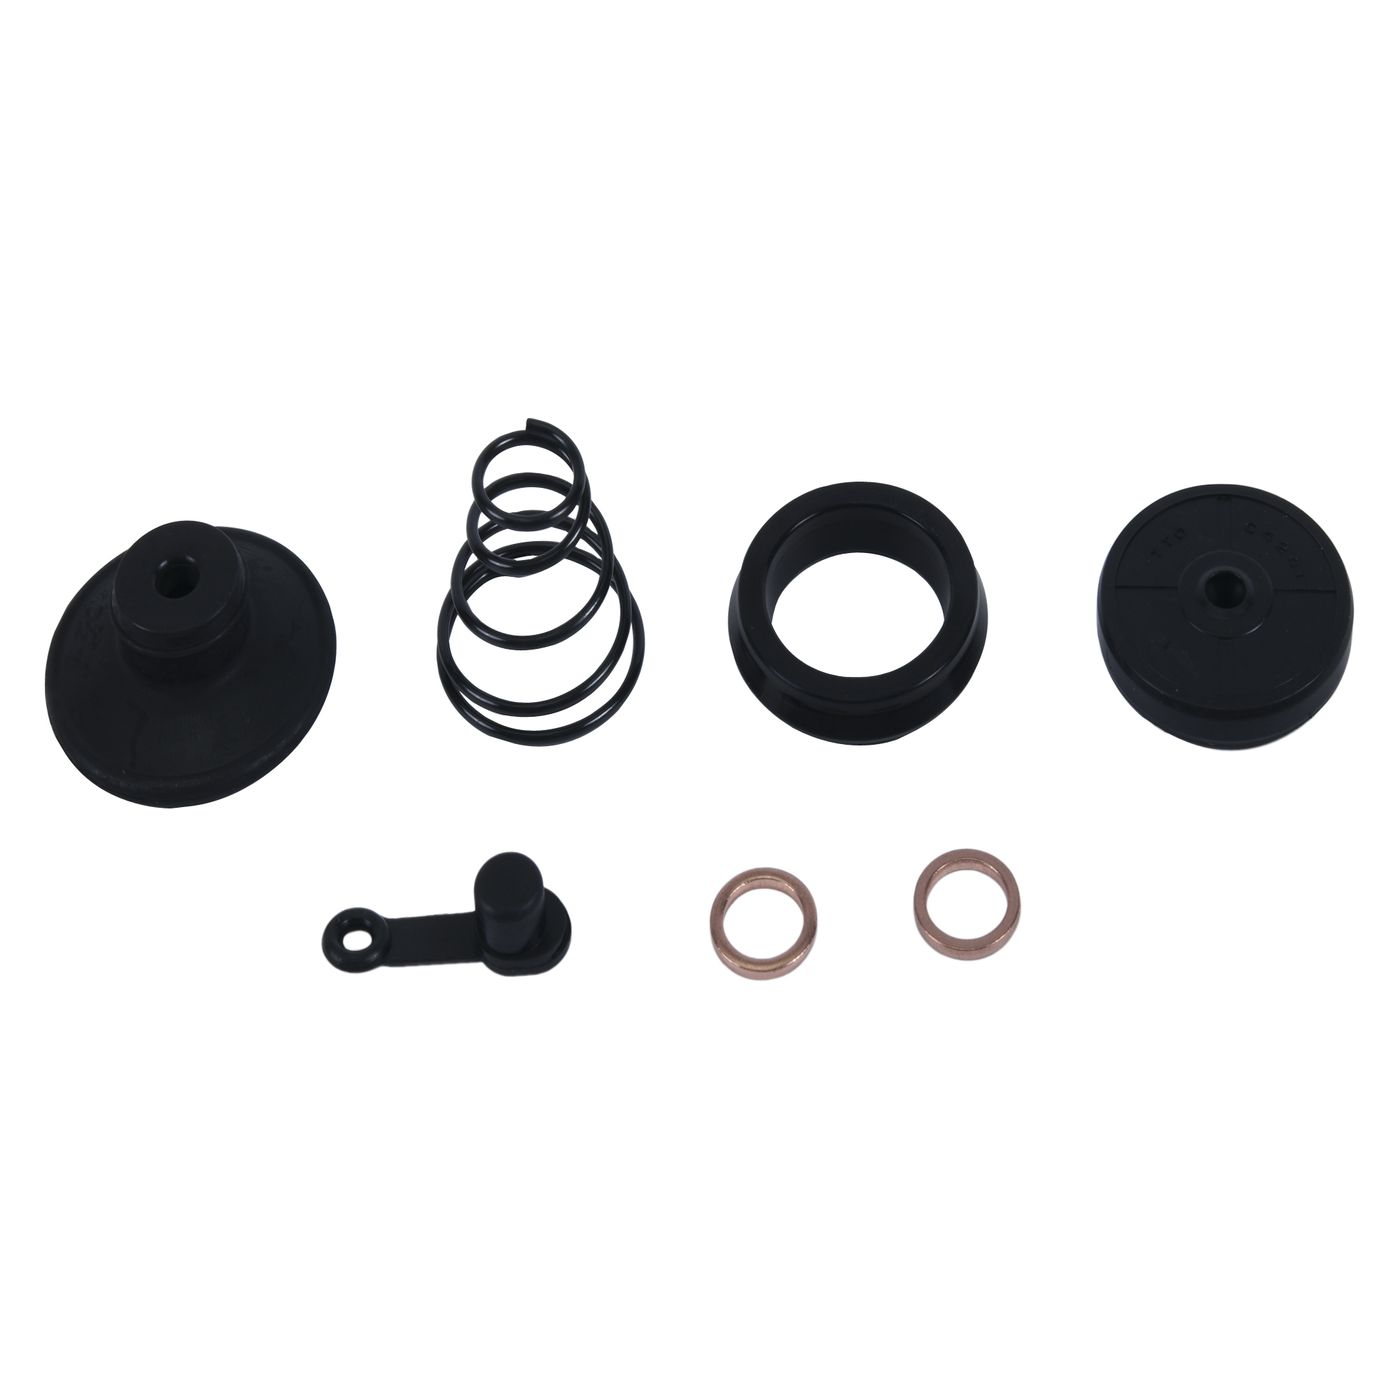 Wrp Clutch Slave Cylinder Kits - WRP186024 image